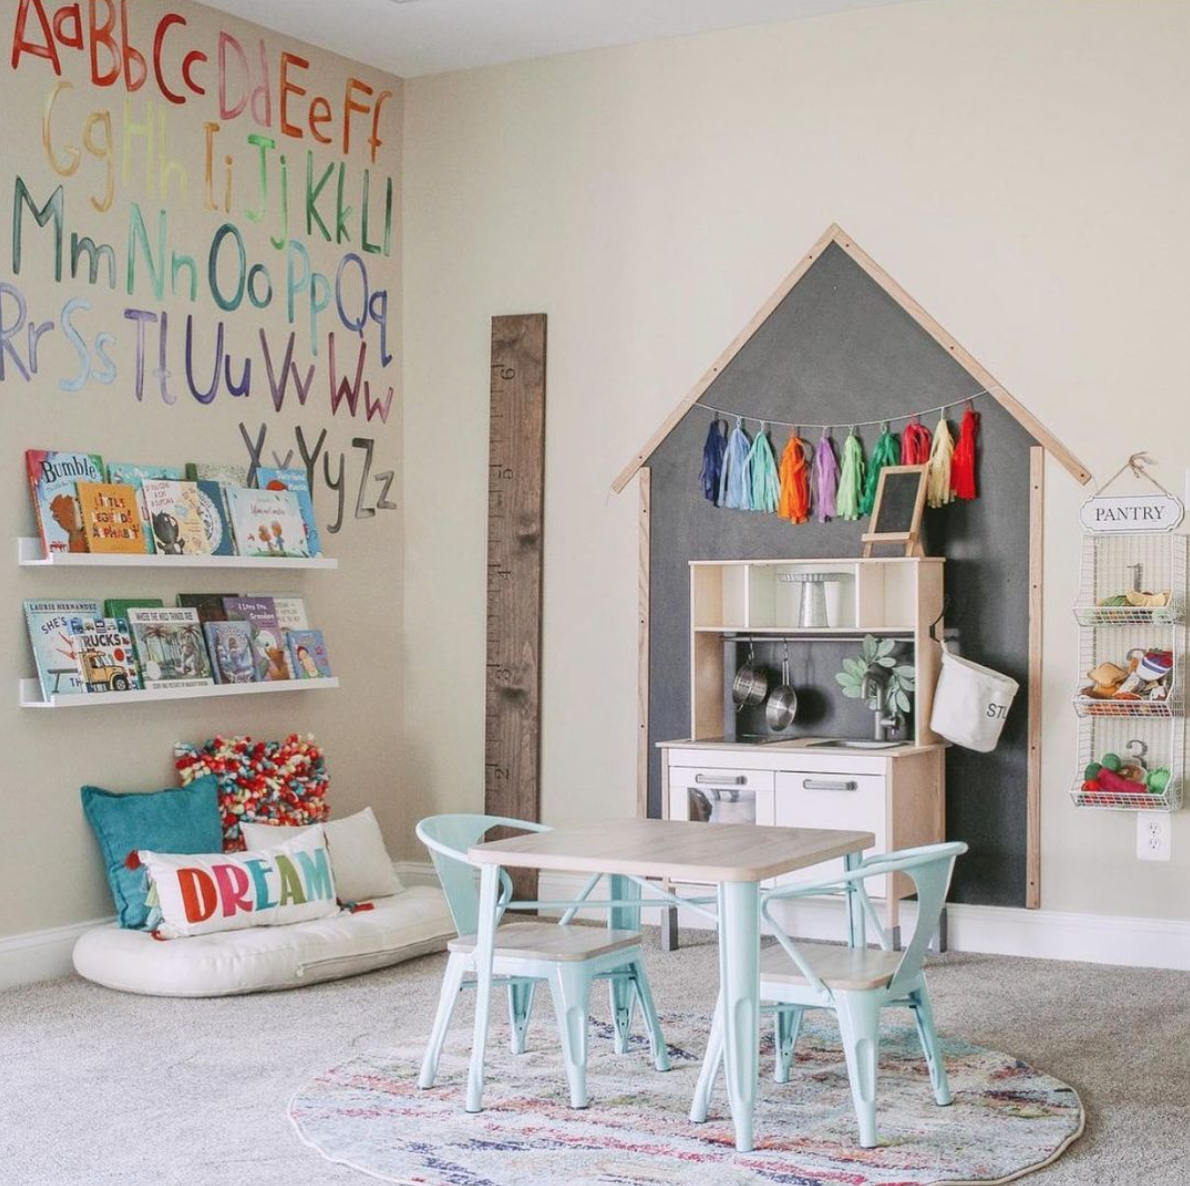 Playroom Meets Classroom Trend - ABC Decals in Playroom by @queenofthebeehive